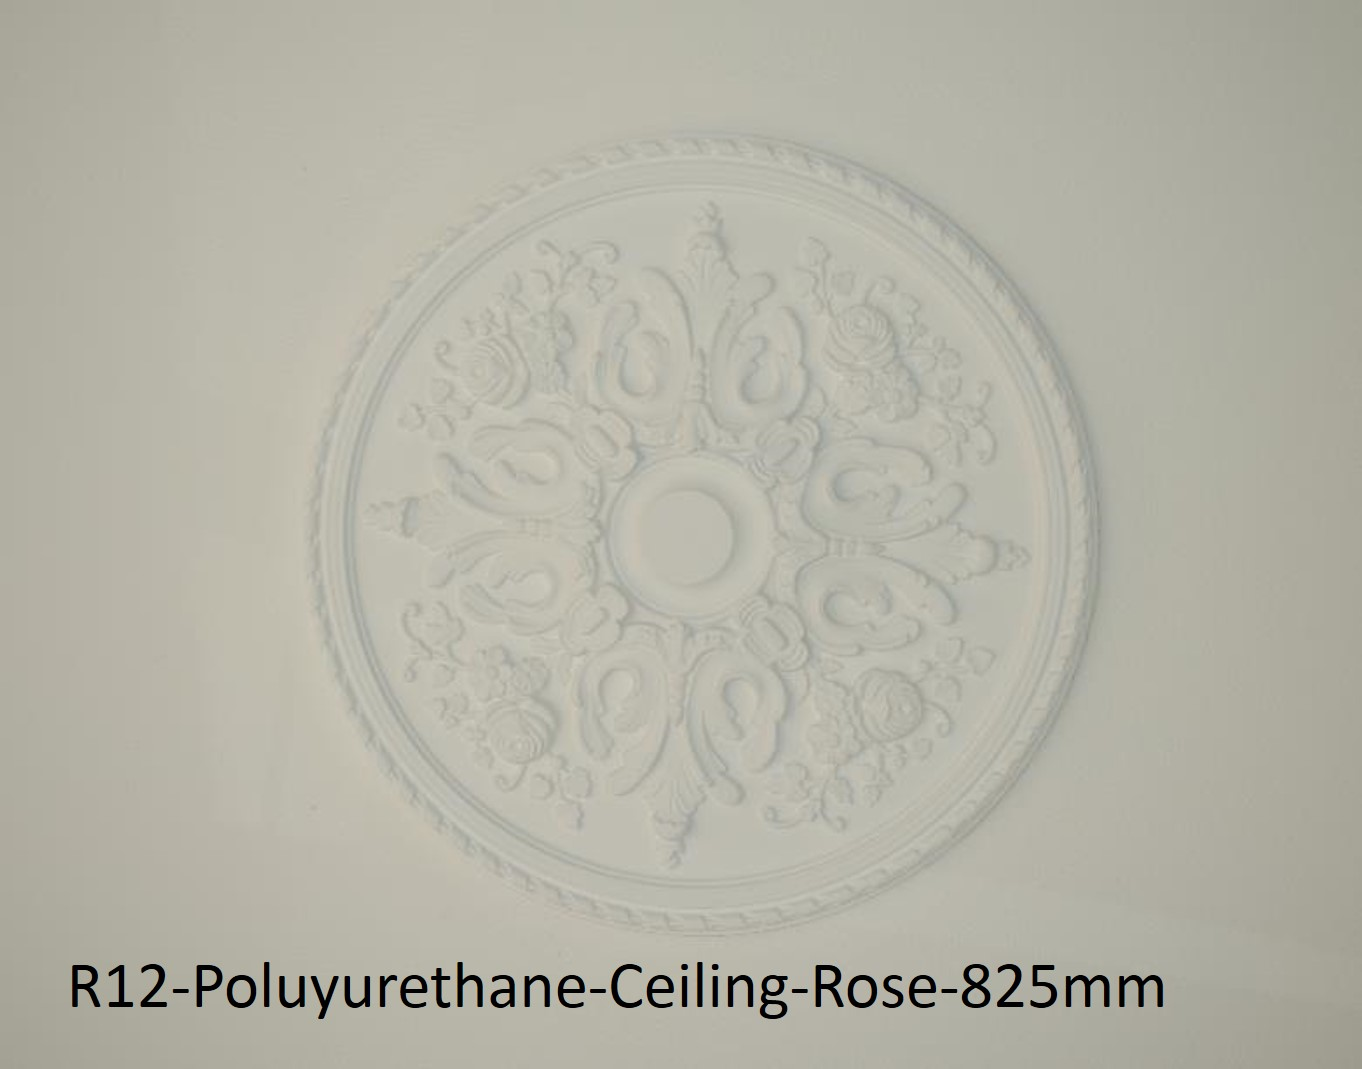 Extreme Mouldings R12-Poluyurethane-Ceiling-Rose-825mm